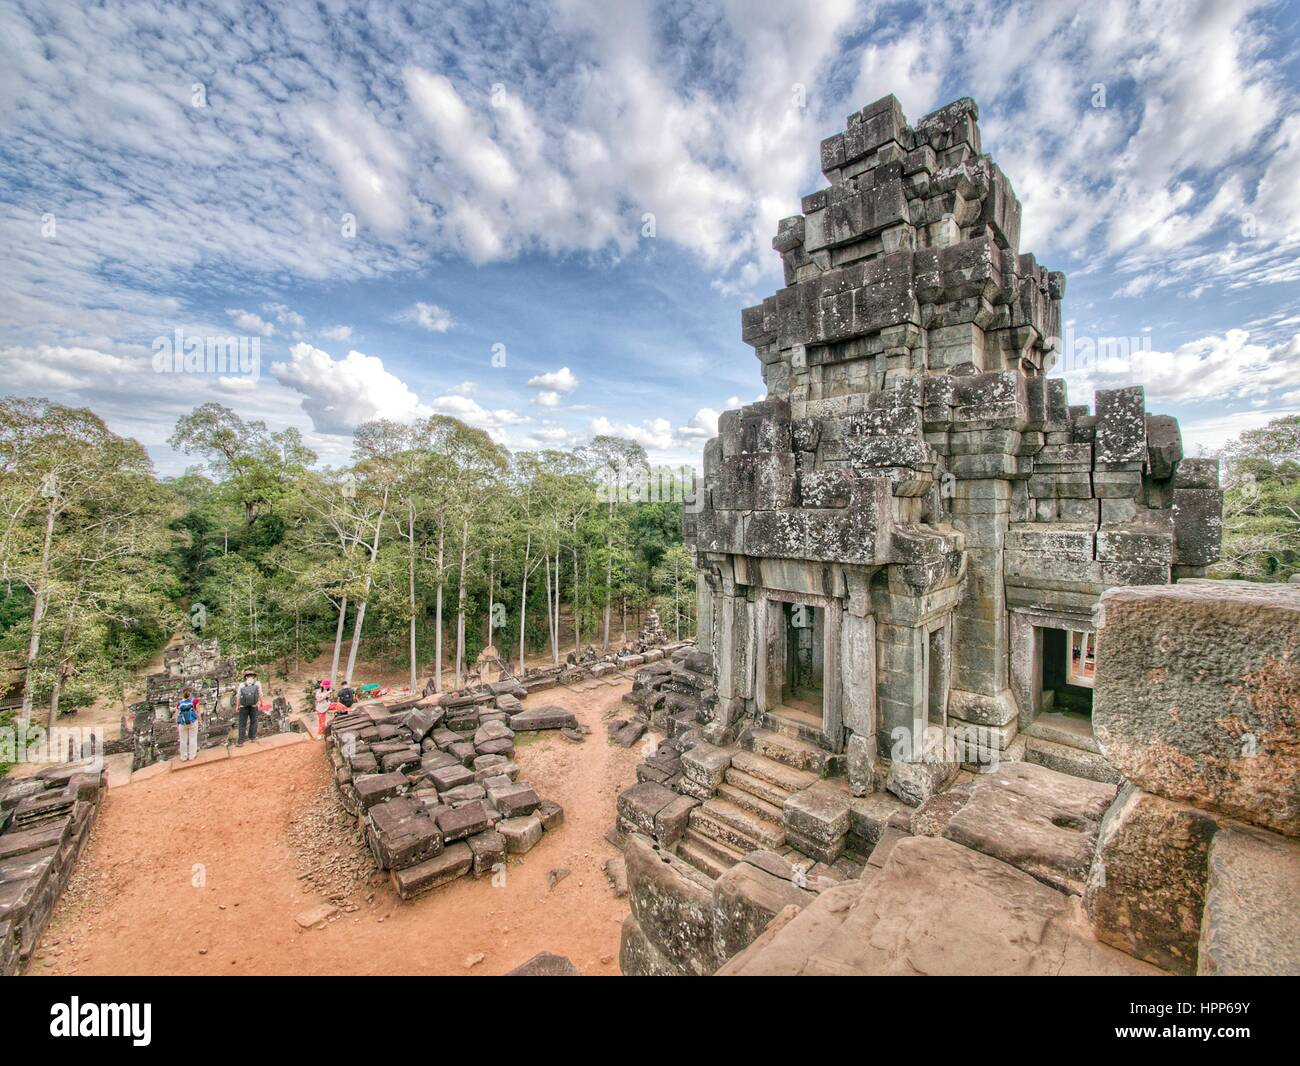 Tempel in Angkor Wat Website Stockbild